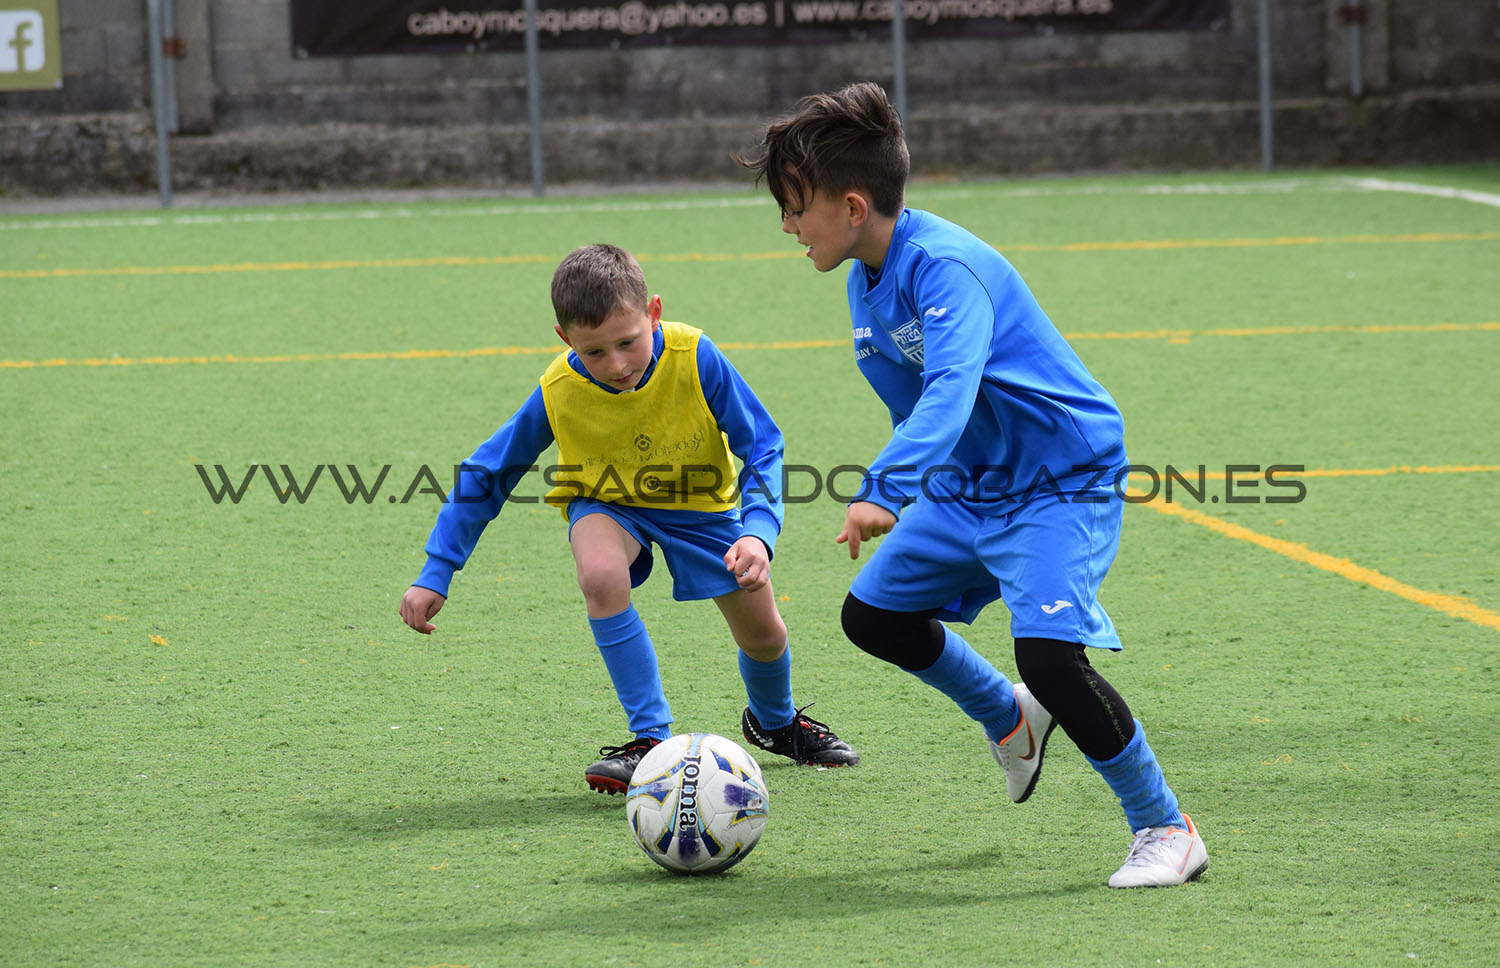 clinic-celta-sagrado (52)